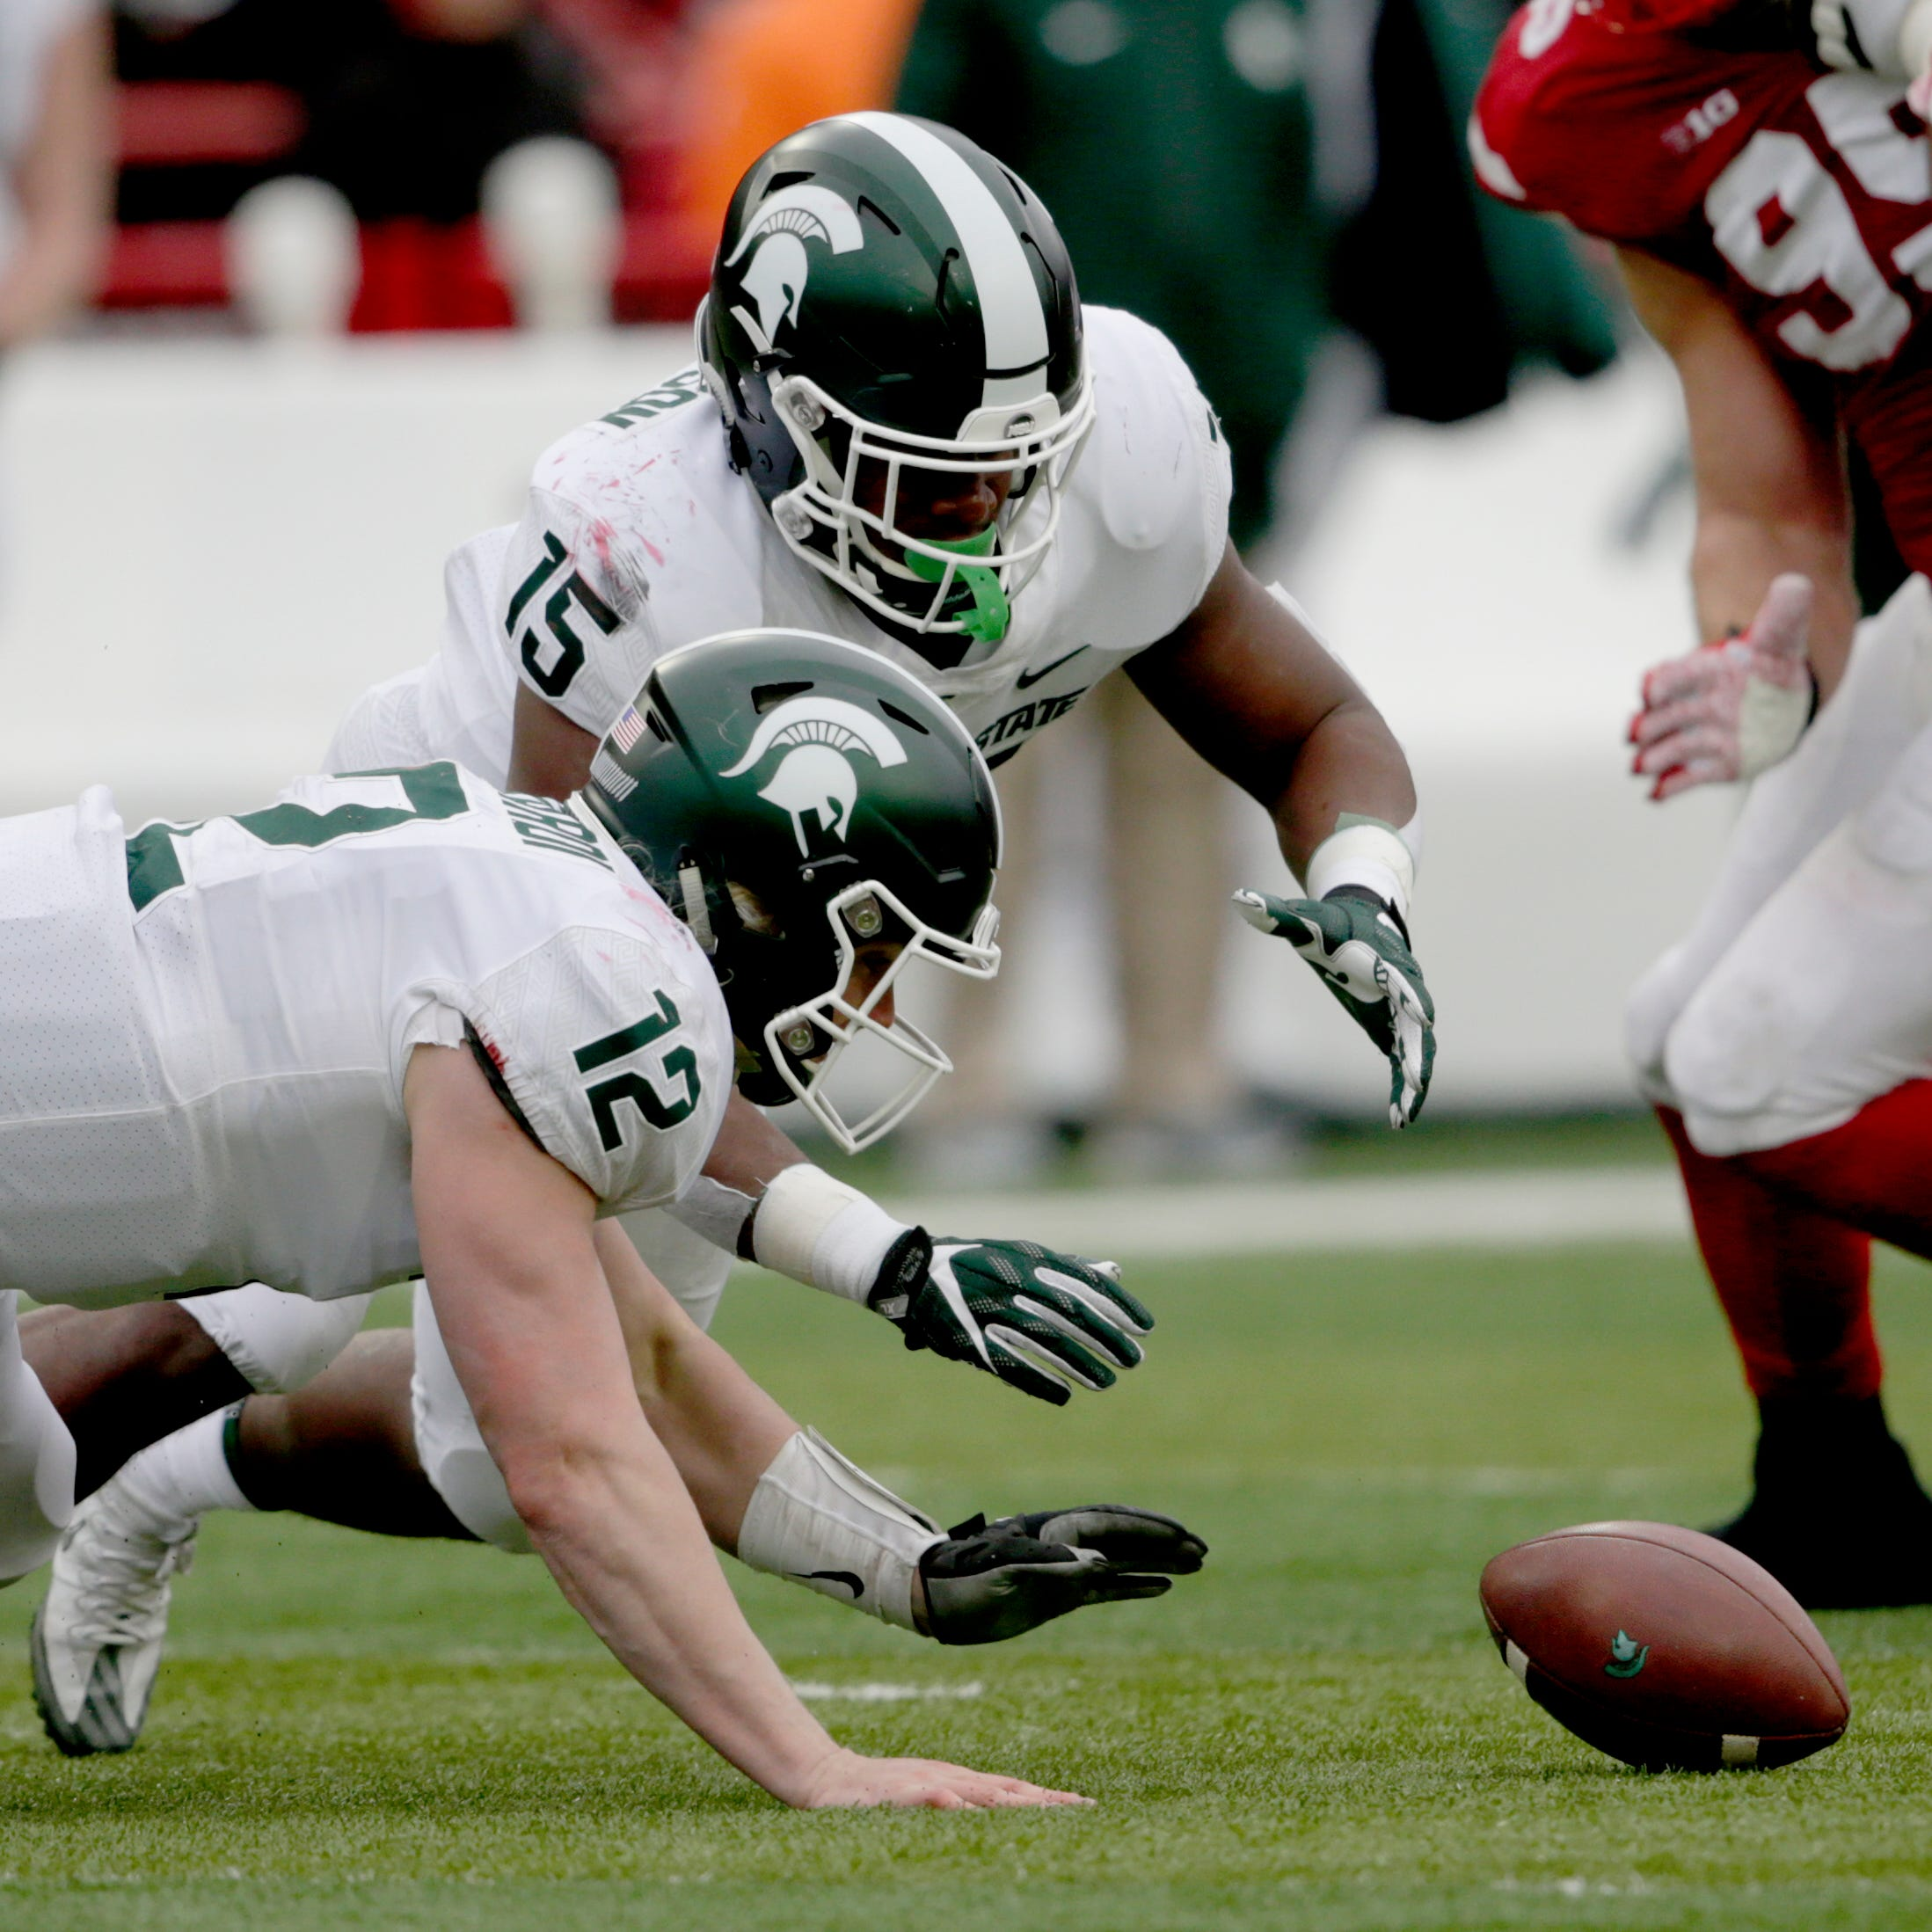 Michigan State football stock watch: QB Lombardi struggles at Nebraska